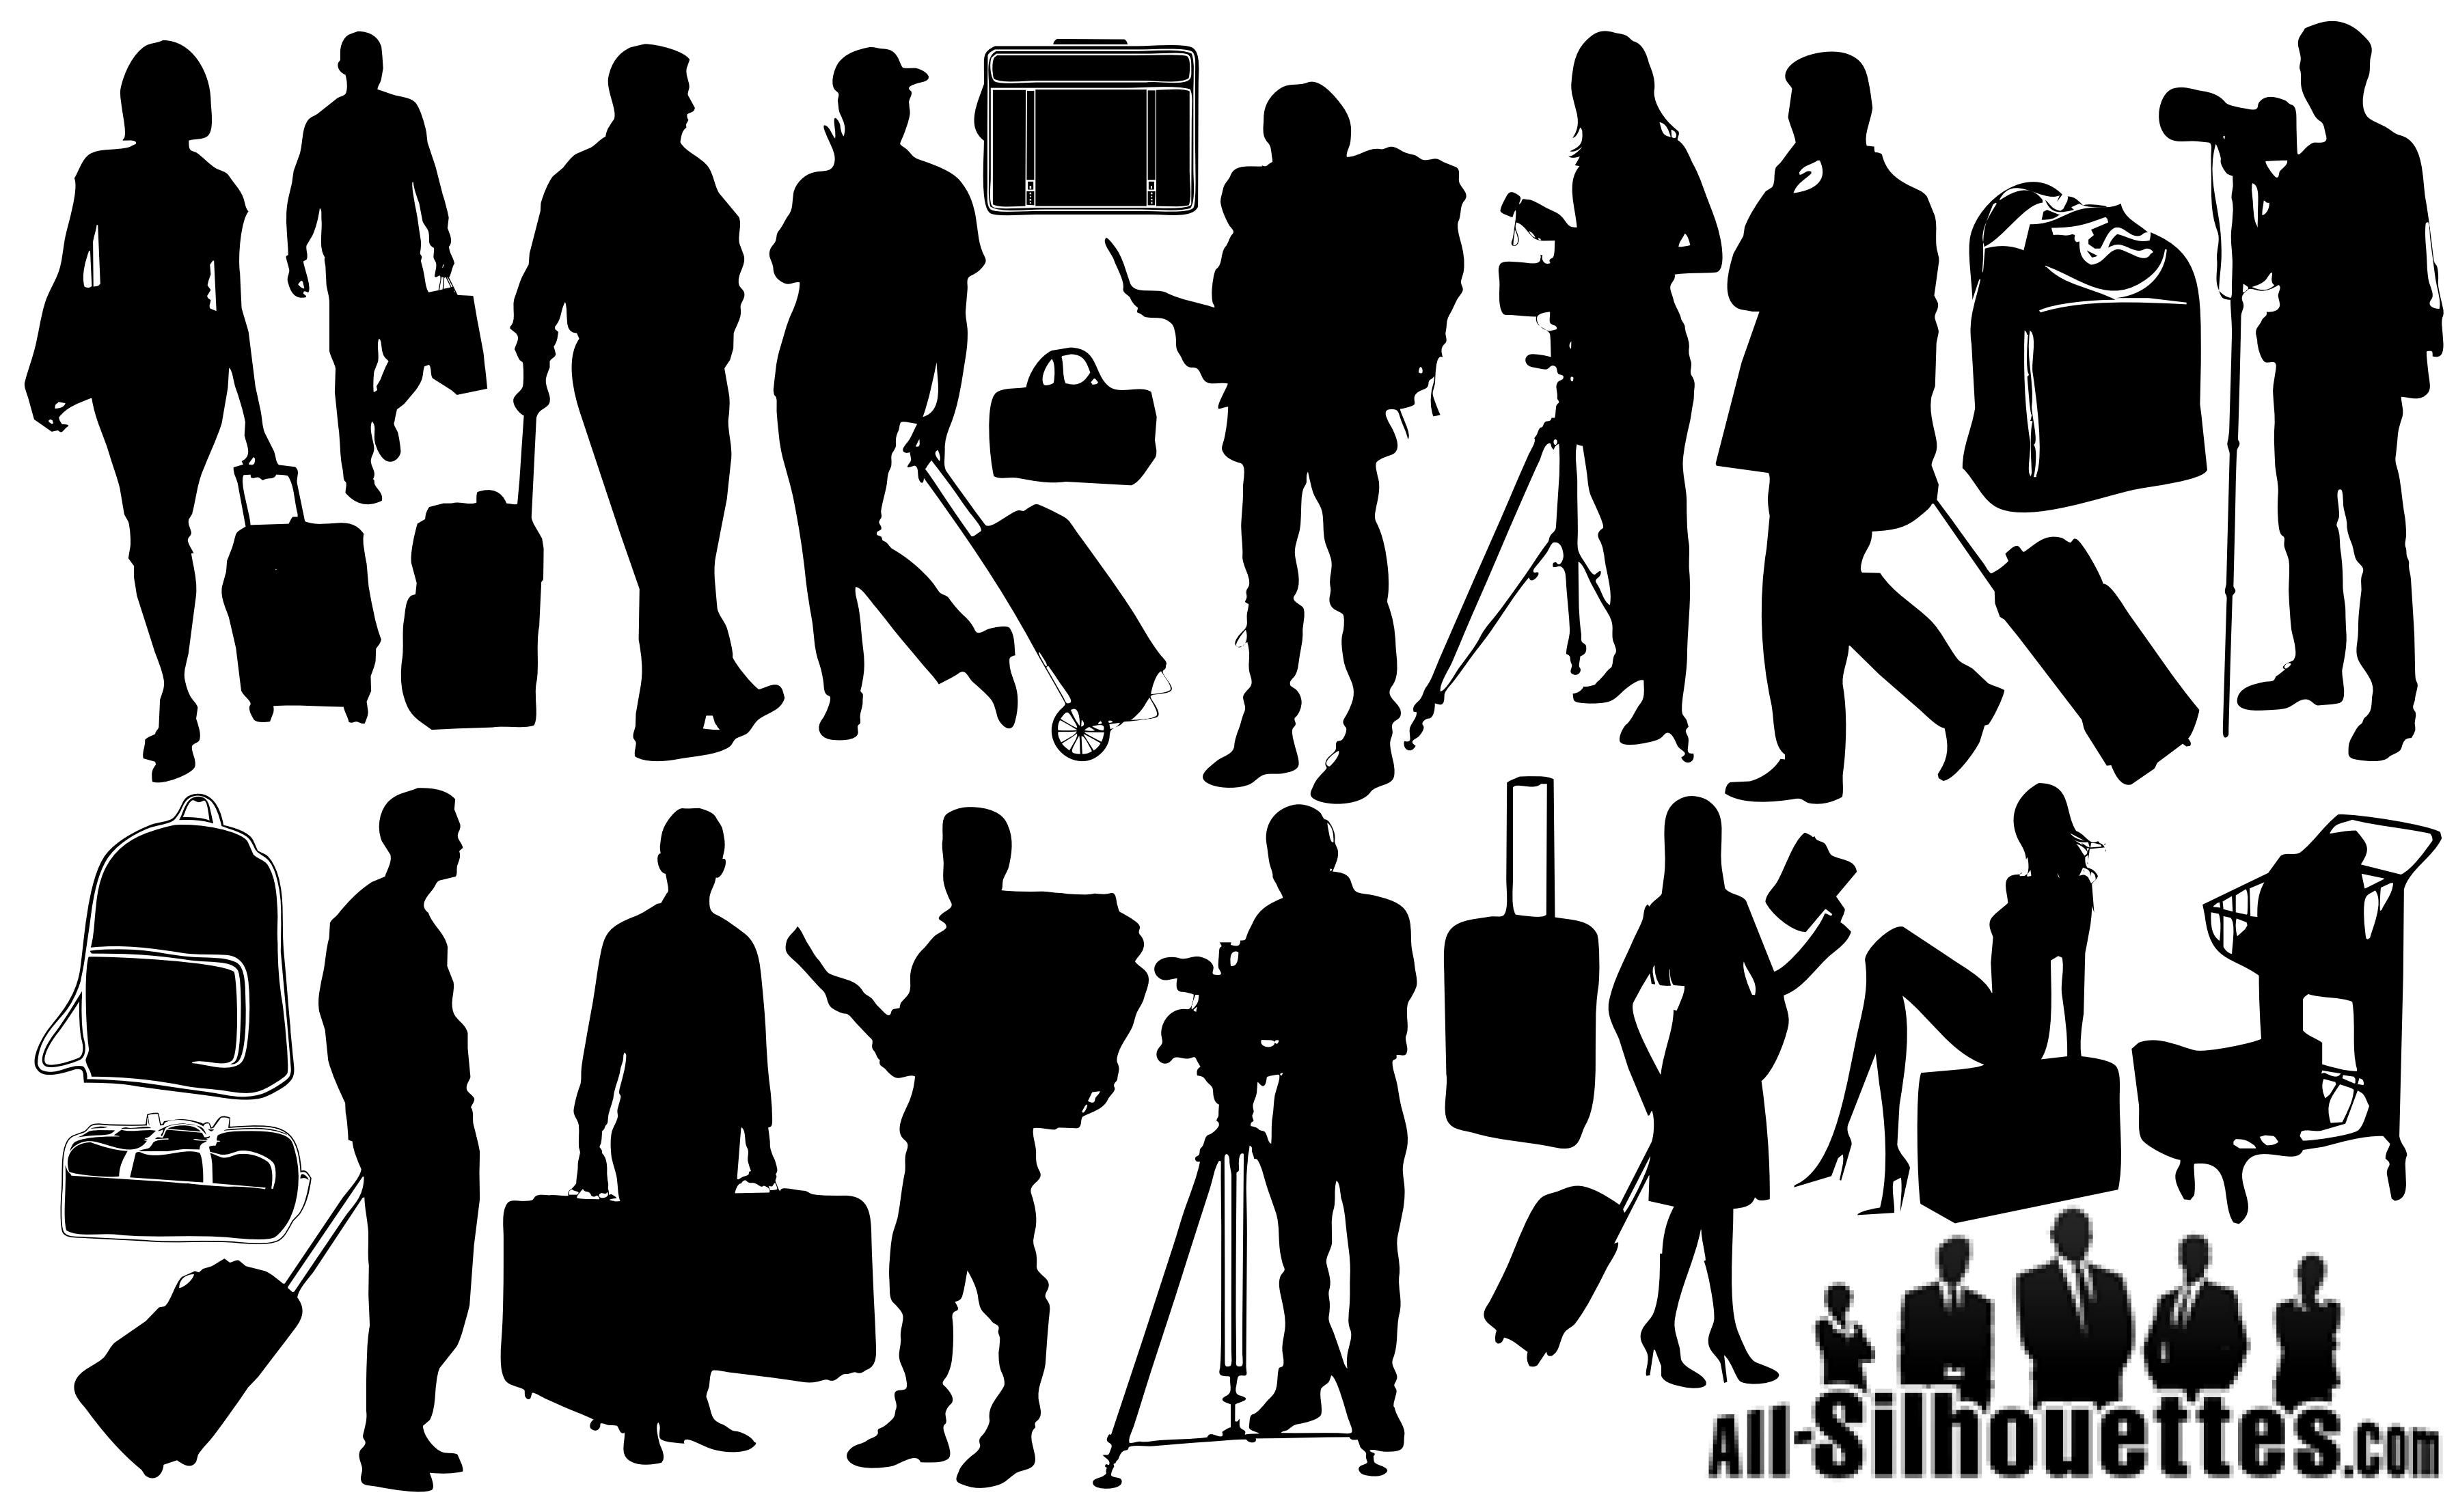 Traveling People Silhouettes Vector Art Graphics: 21 Tourists Travelers Silhouettes